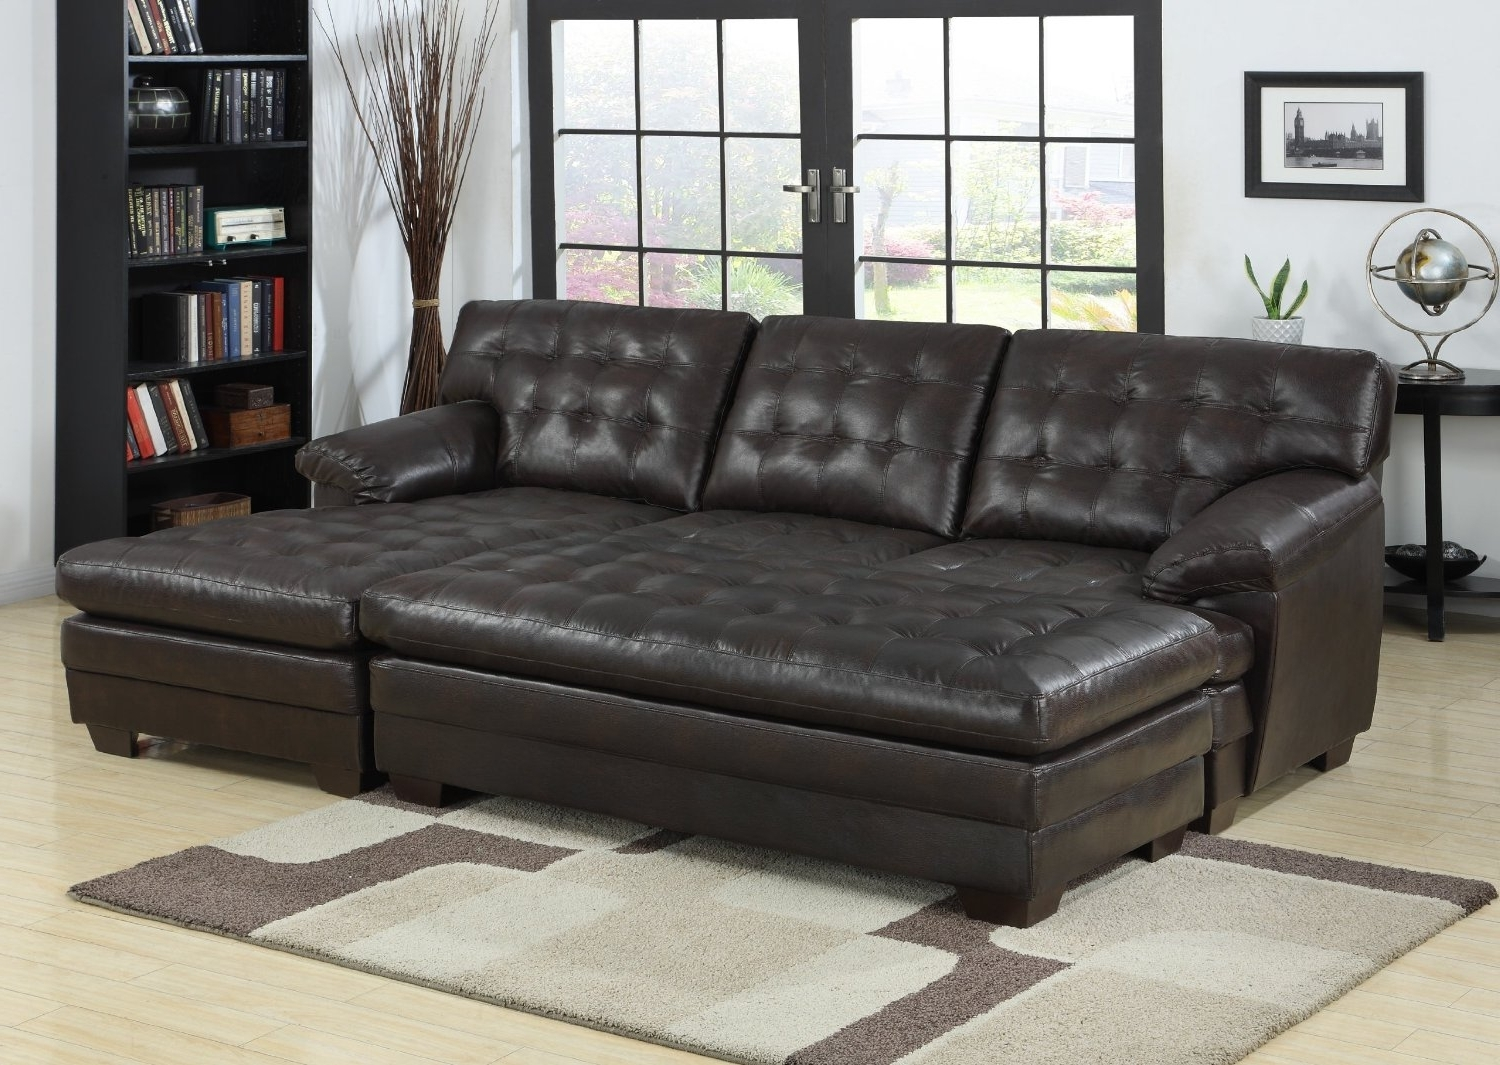 Leather Sectional Sleeper Sofas With Chaise For Famous Armchair : Leather Sectional Sleeper Sofa With Chaise Sectional (View 10 of 15)